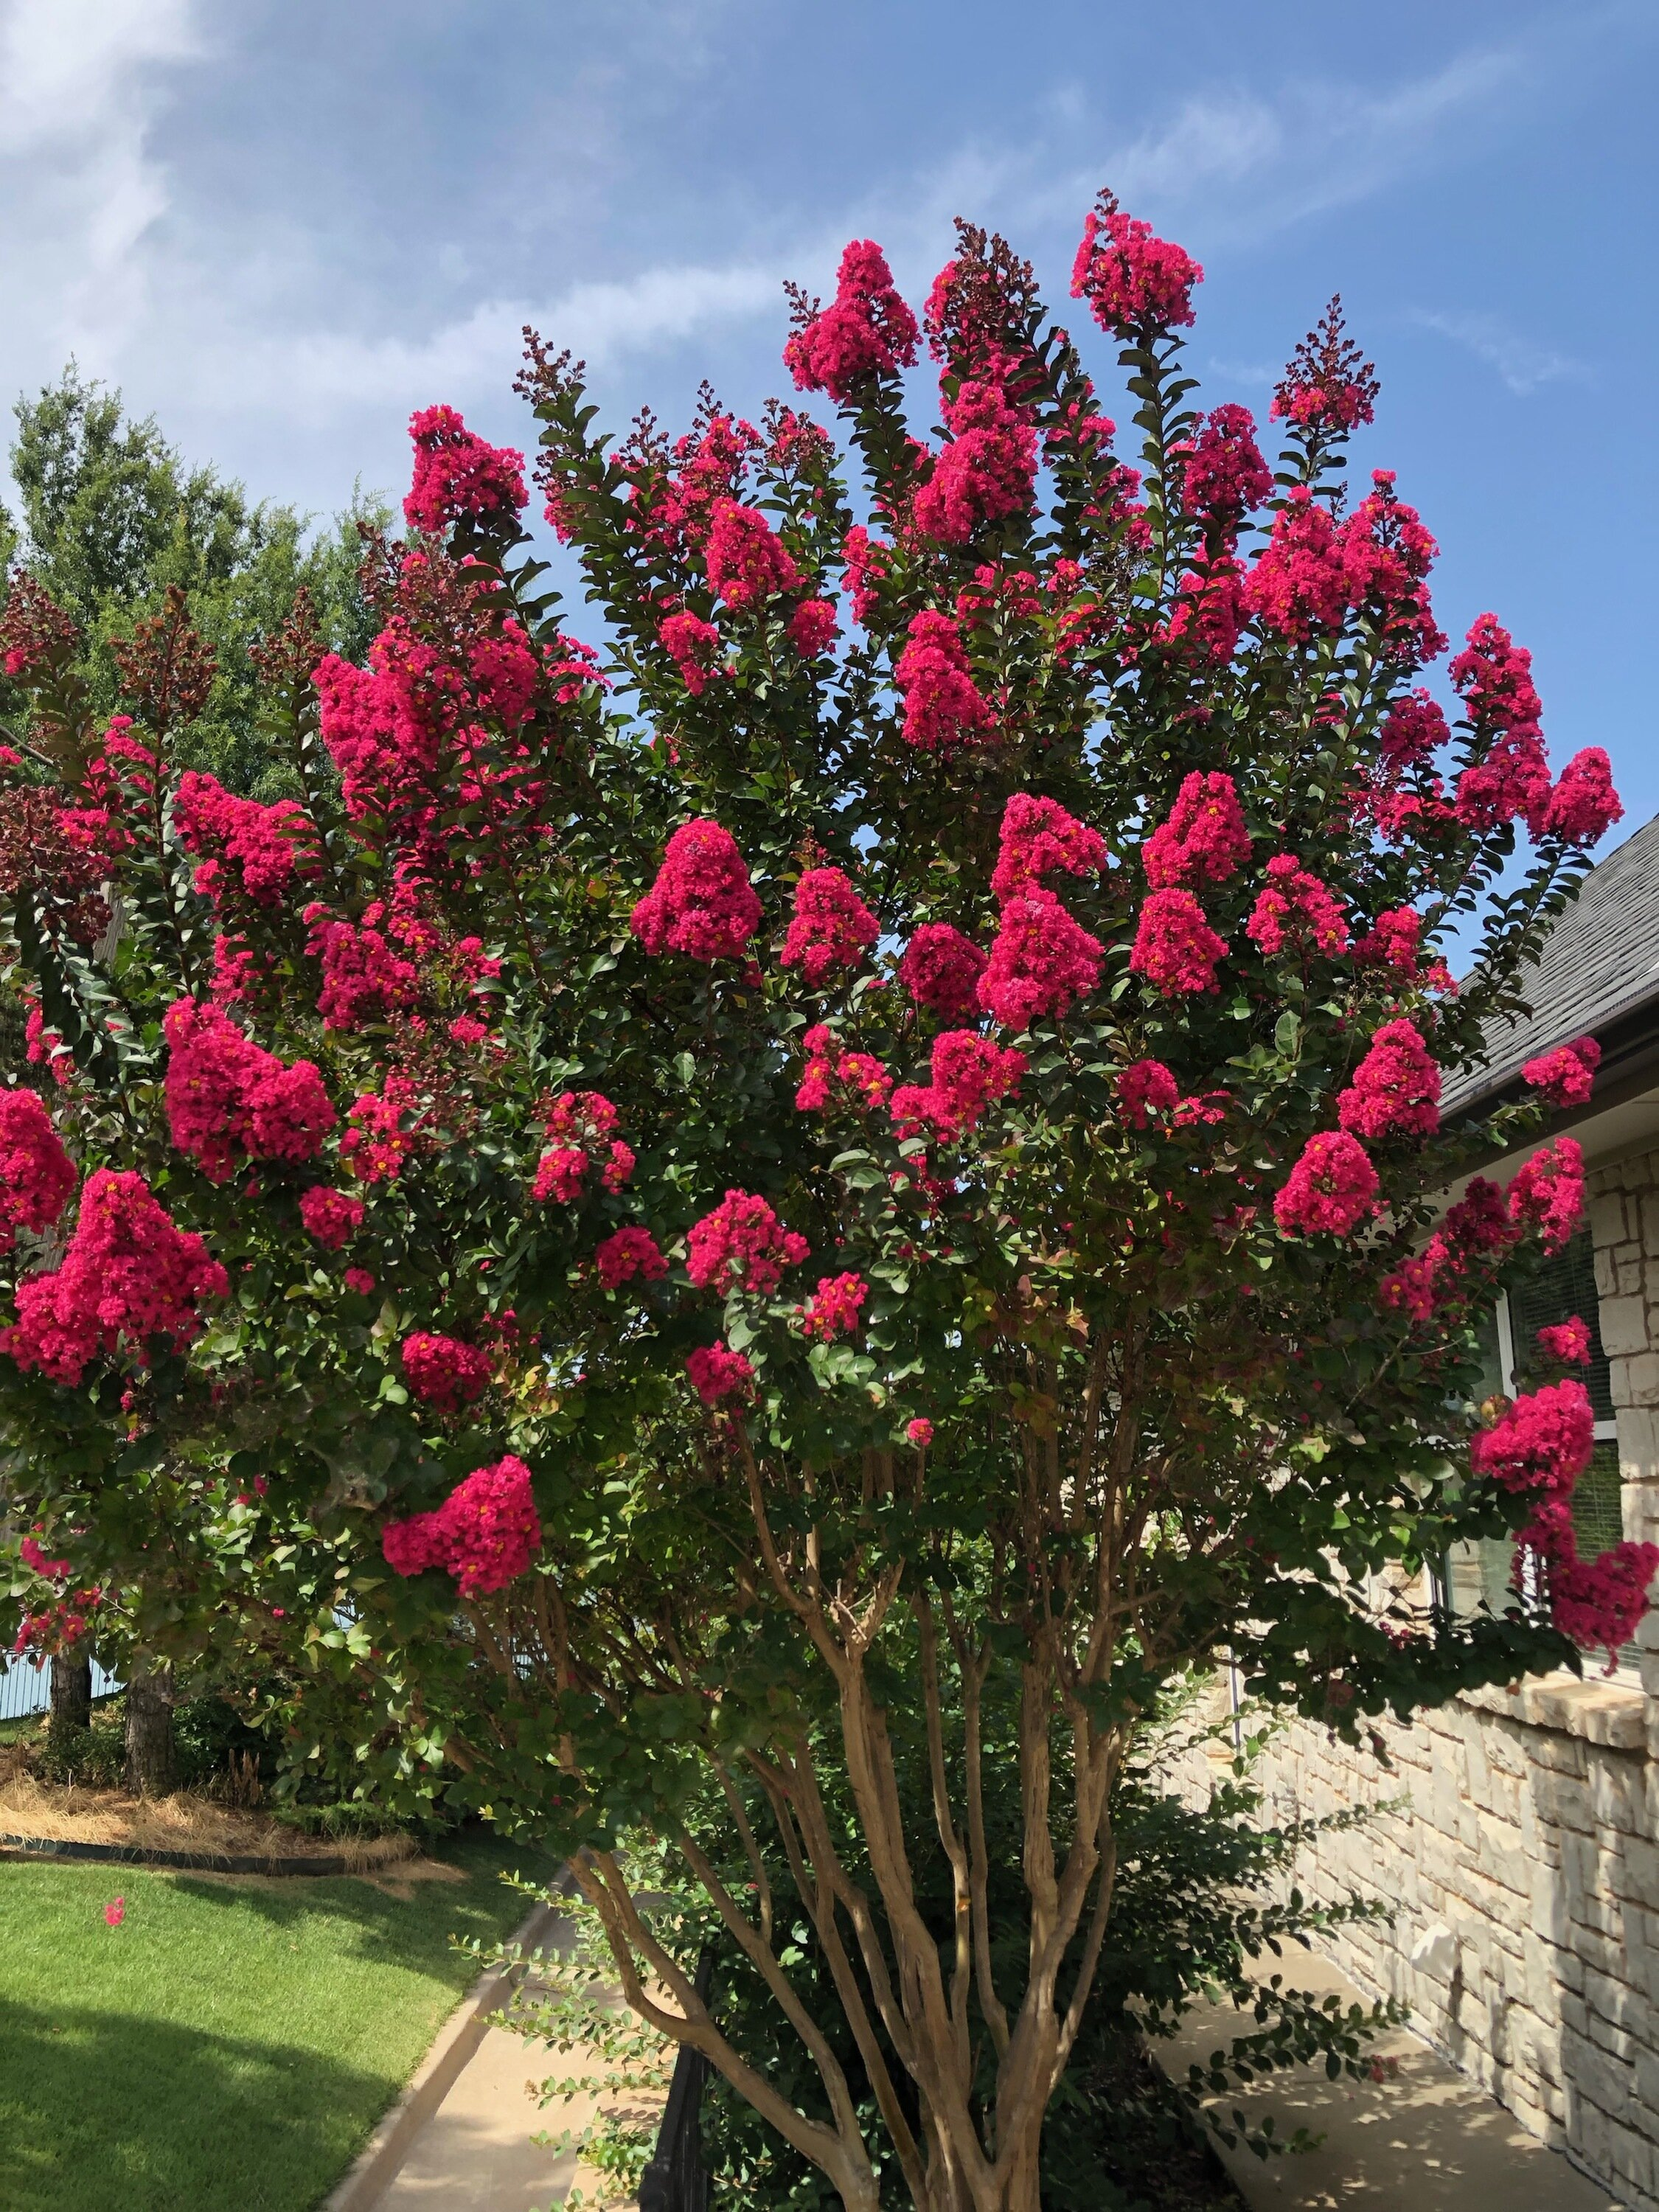 Crape Myrtles planted in the fall will bloom more their first season than ones planted in the spring or summer.